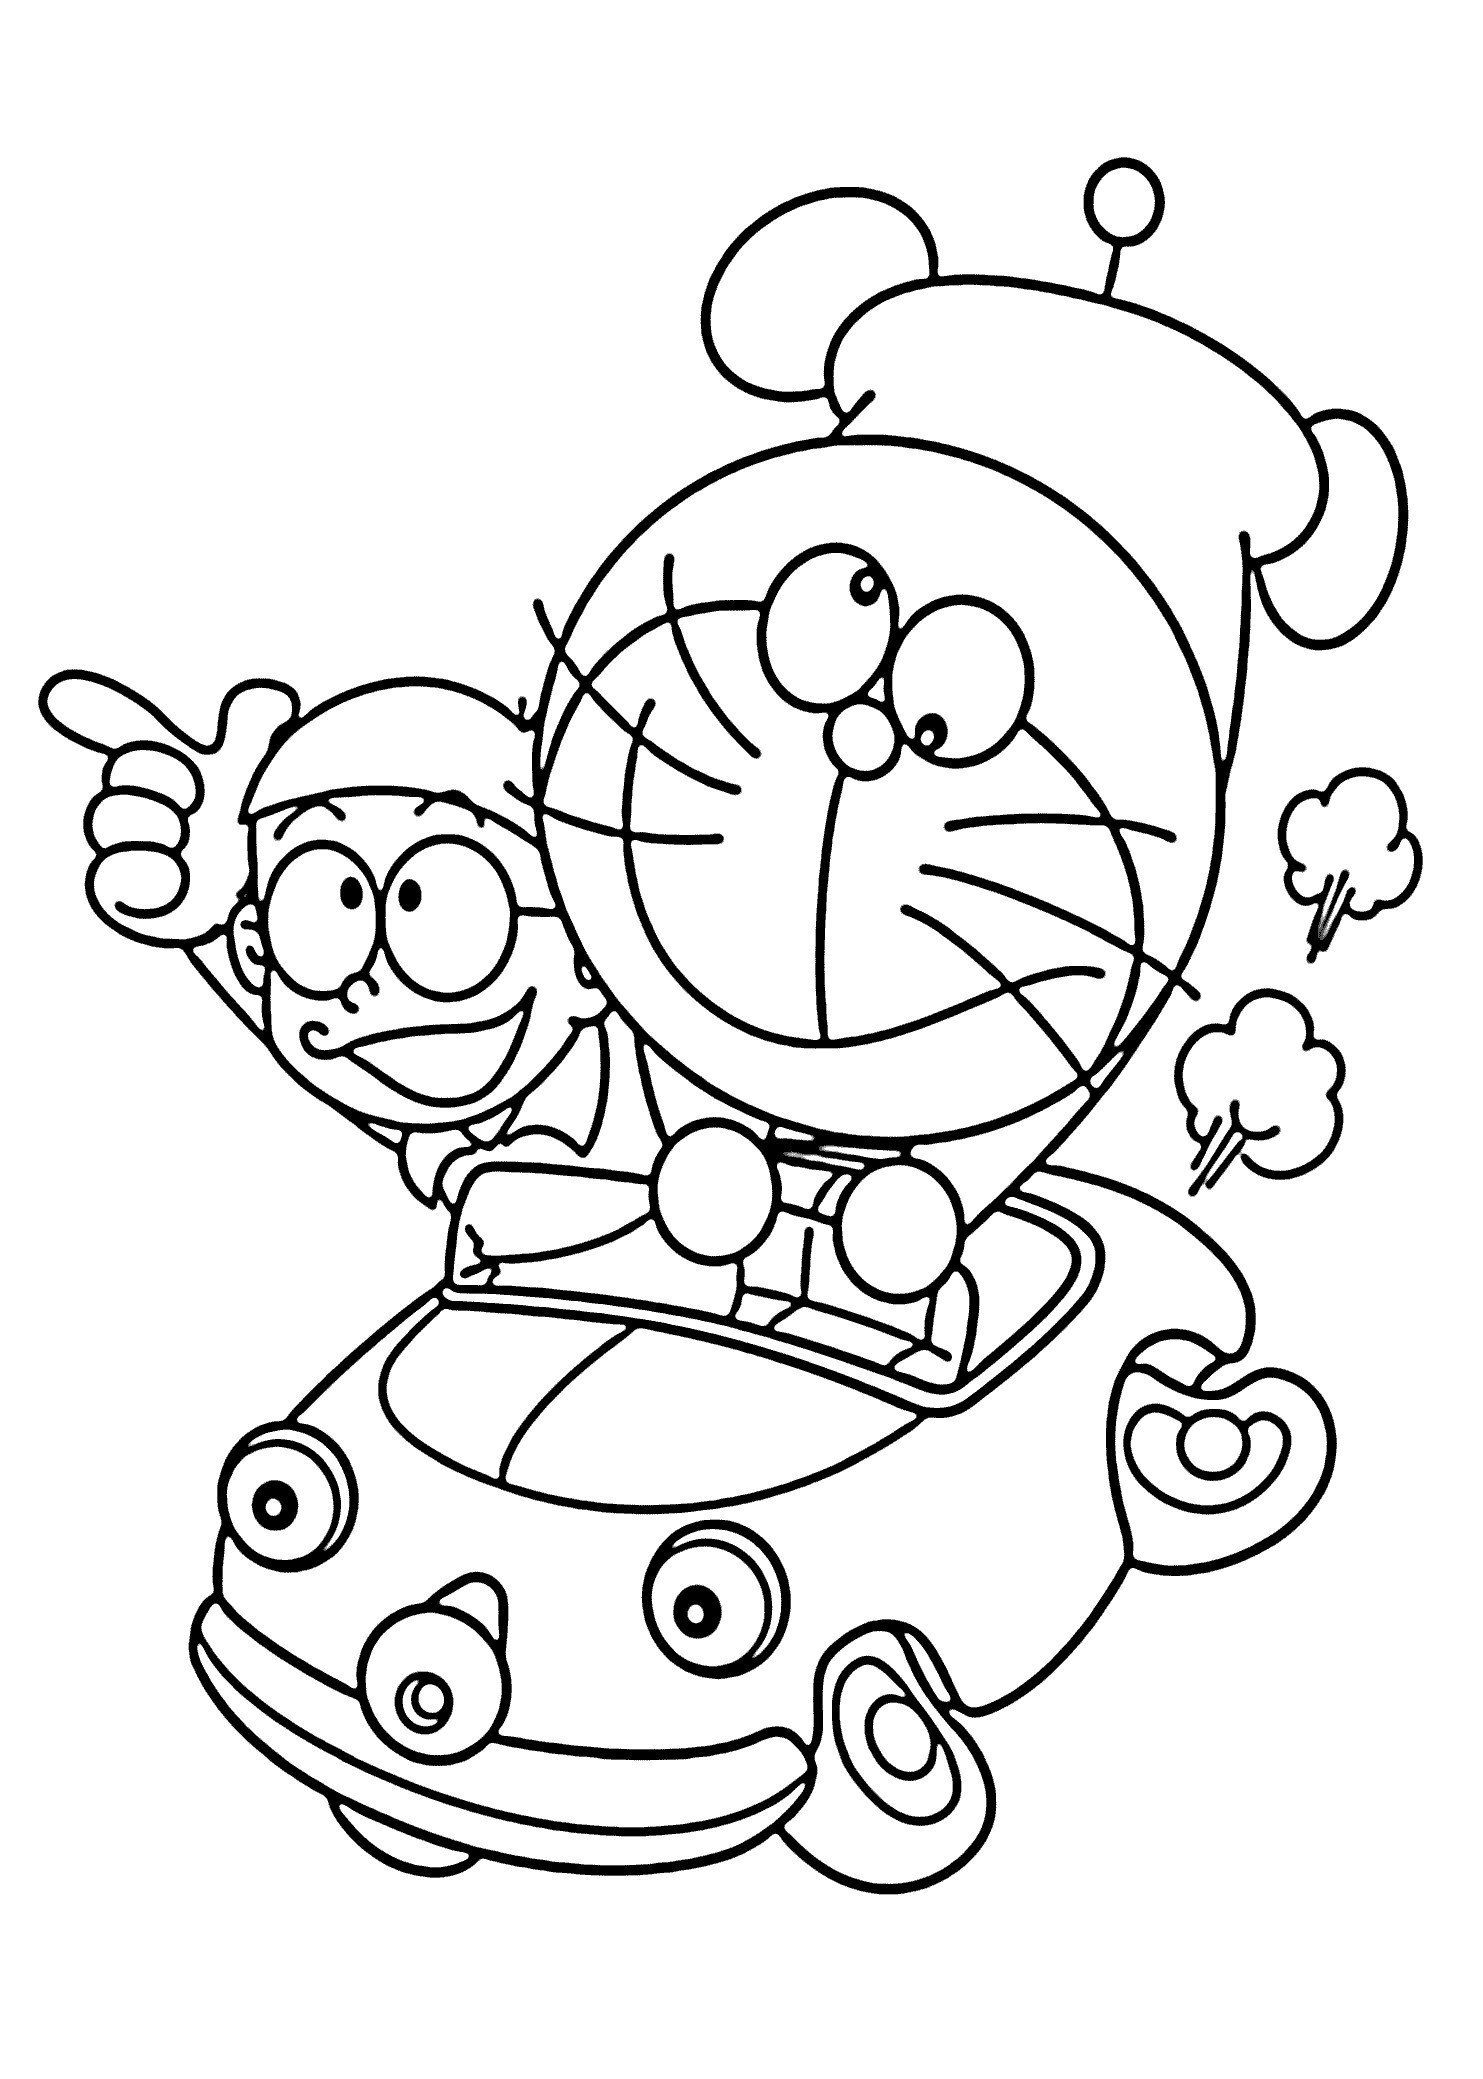 Solar System Coloring Page Luxury Luxury Move Over Rover Coloring